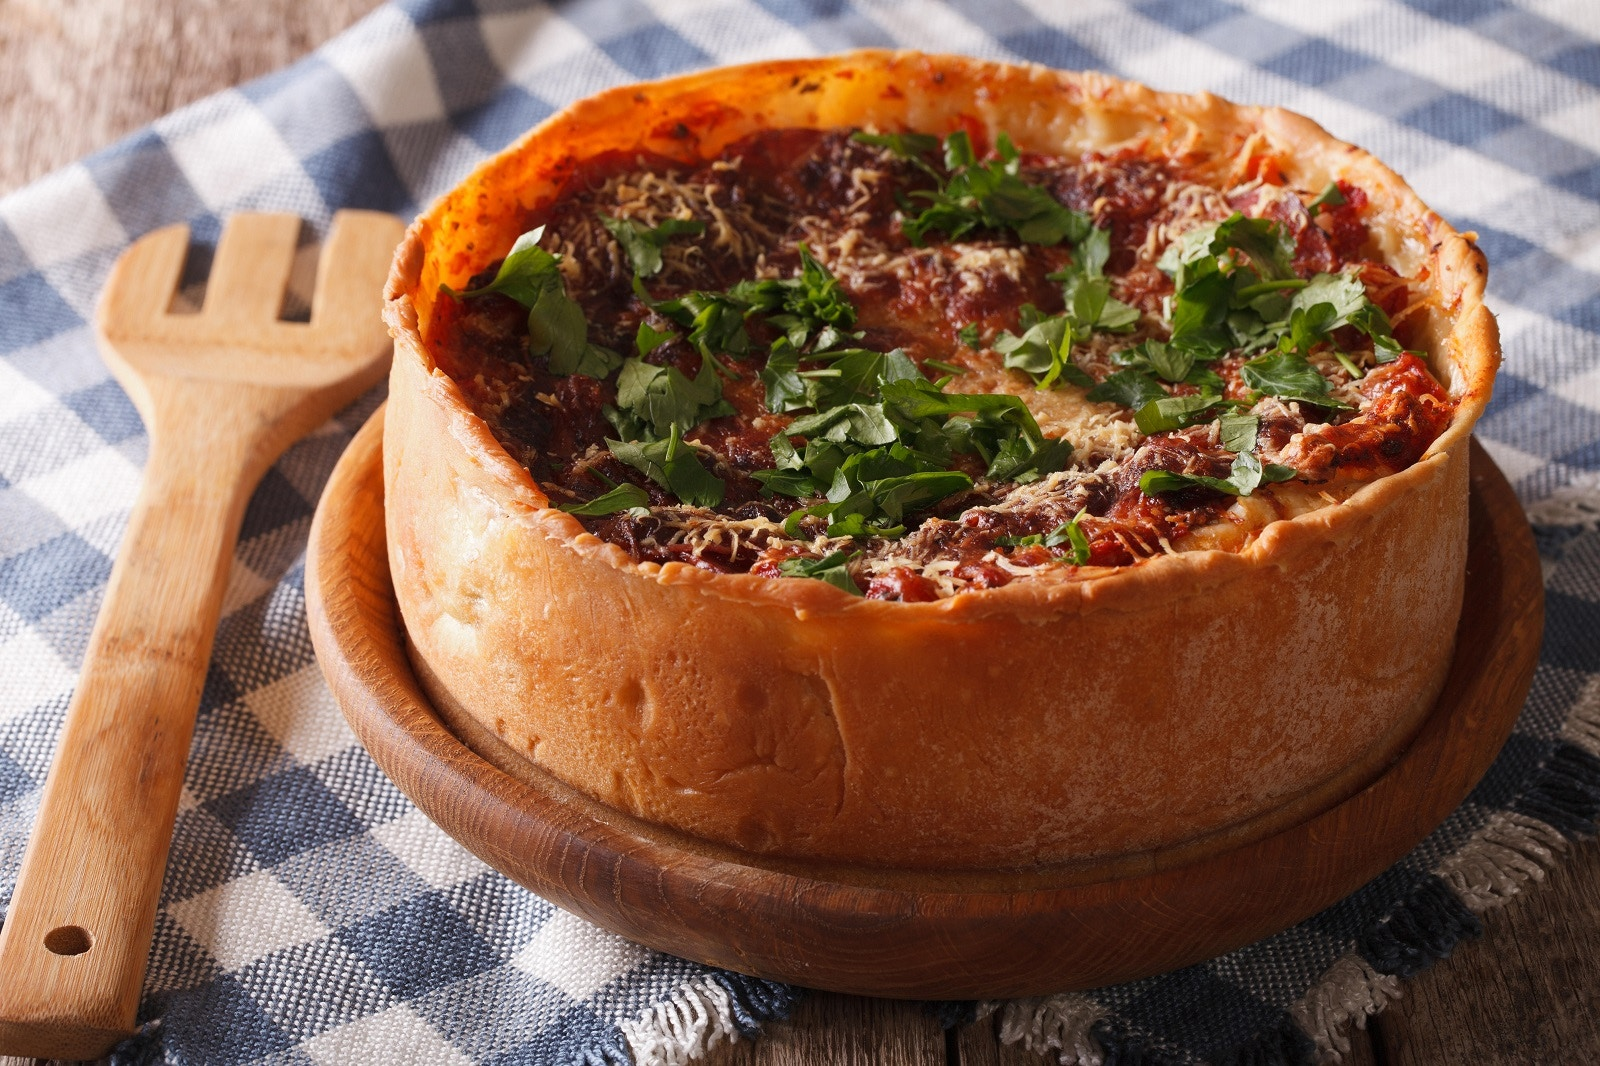 A deep-dish pizza in Chicago © Sergii Koval / Alamy Stock Photo